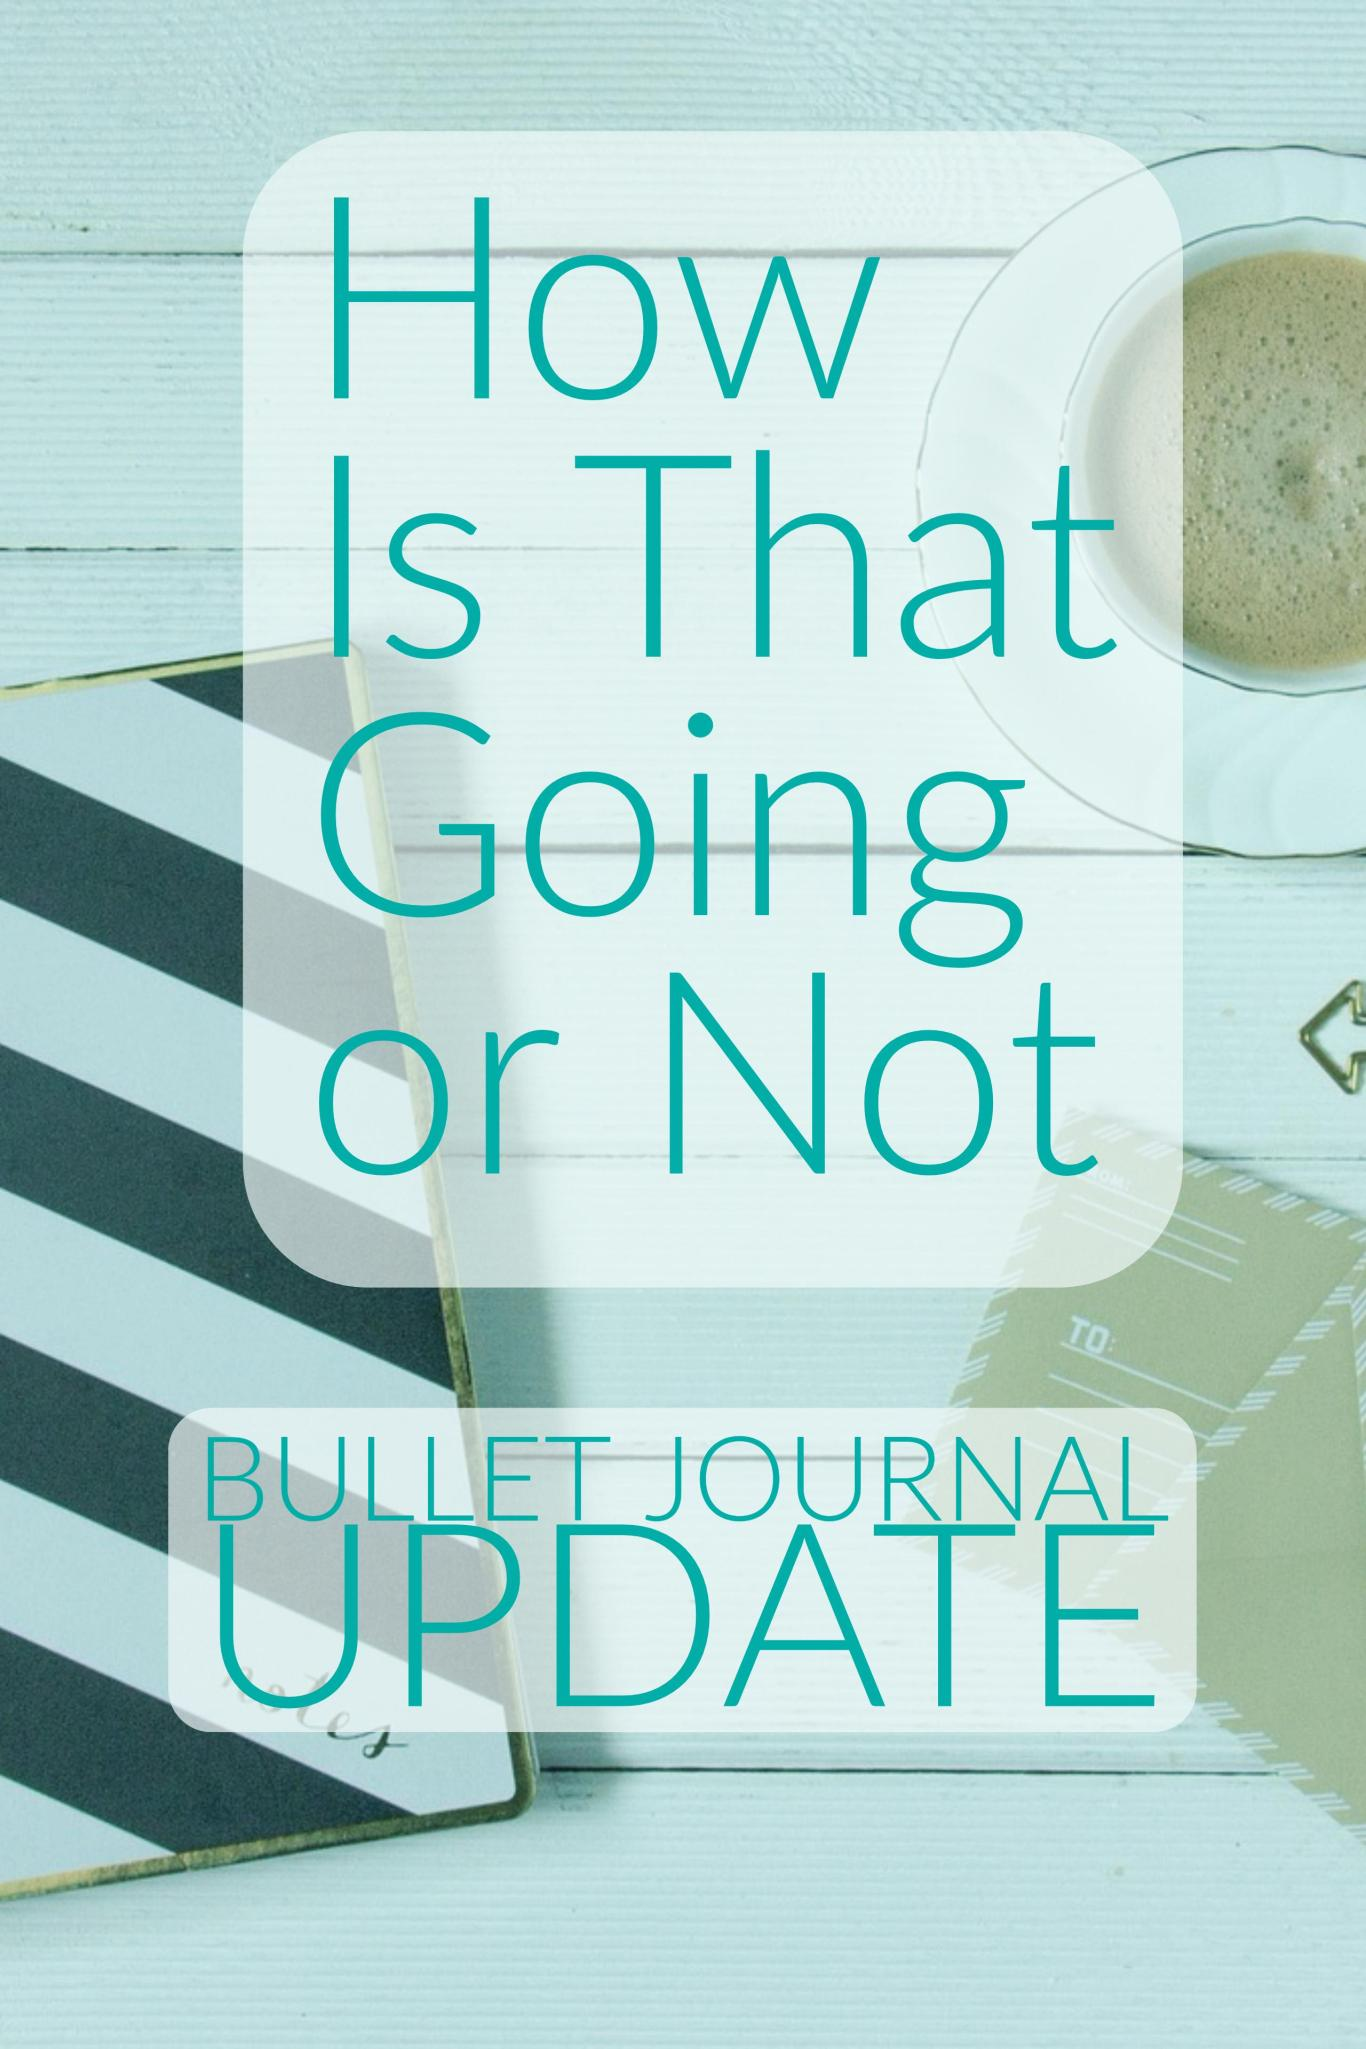 How Is That Going or Not - Bullet Journal Update